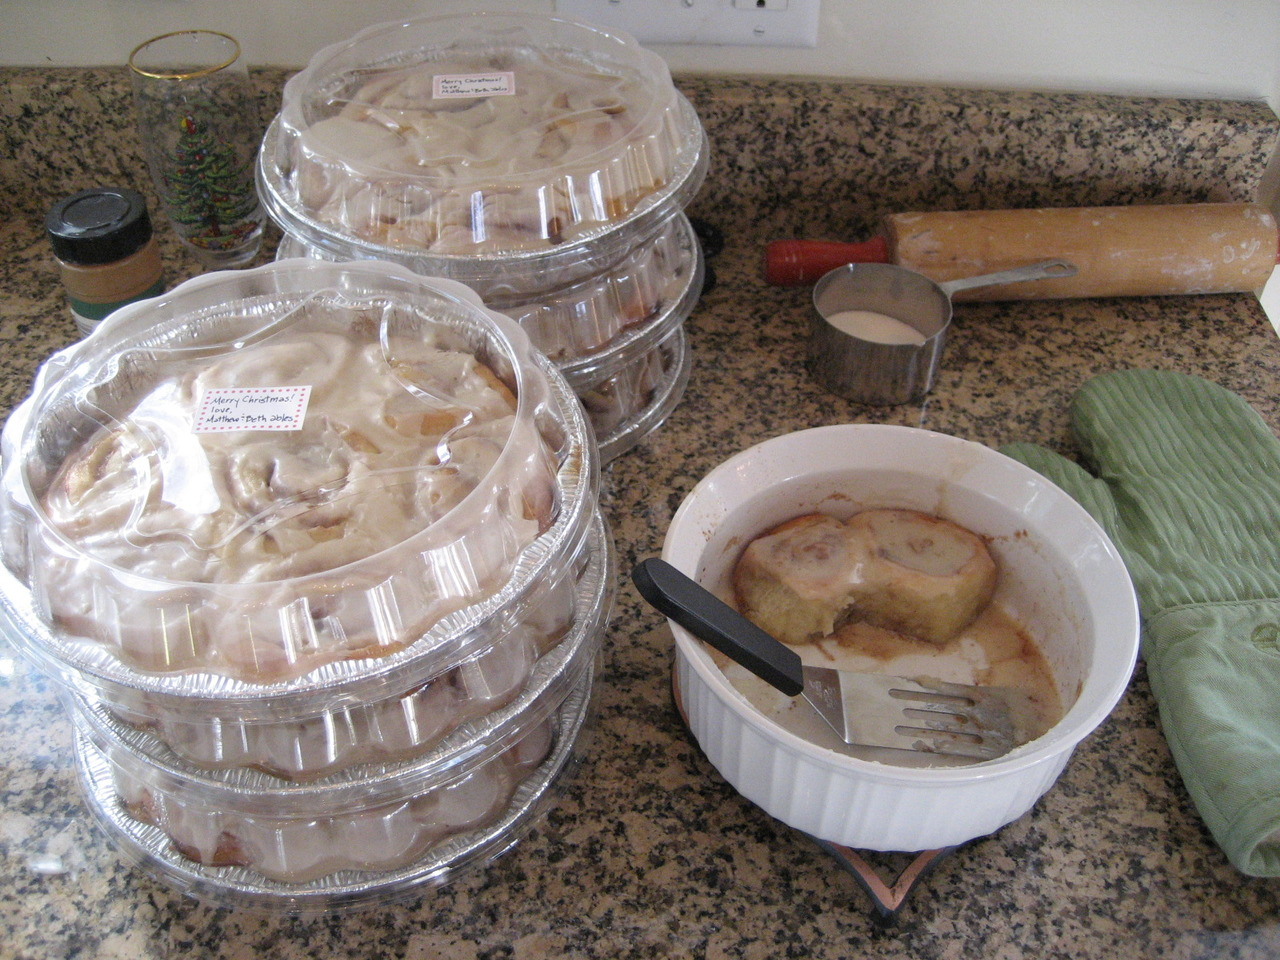 I baked eight pans of cinnamon rolls Sunday morning because I got it in my head that we should have something really yummy and awesome to give to people like Matthew's work friends, our pastor, and our sweet neighbors. And like ideas like this, the end result was good, and it was fantastic to hand out warm-from-the-oven rolls to friends…but it left me tired and grumpy the rest of the day because I had to get up so early.  It was as if I gave every ounce of niceness and sweetness out with these, and Matthew was left with a mean old hag the rest of the day. (via comealive)